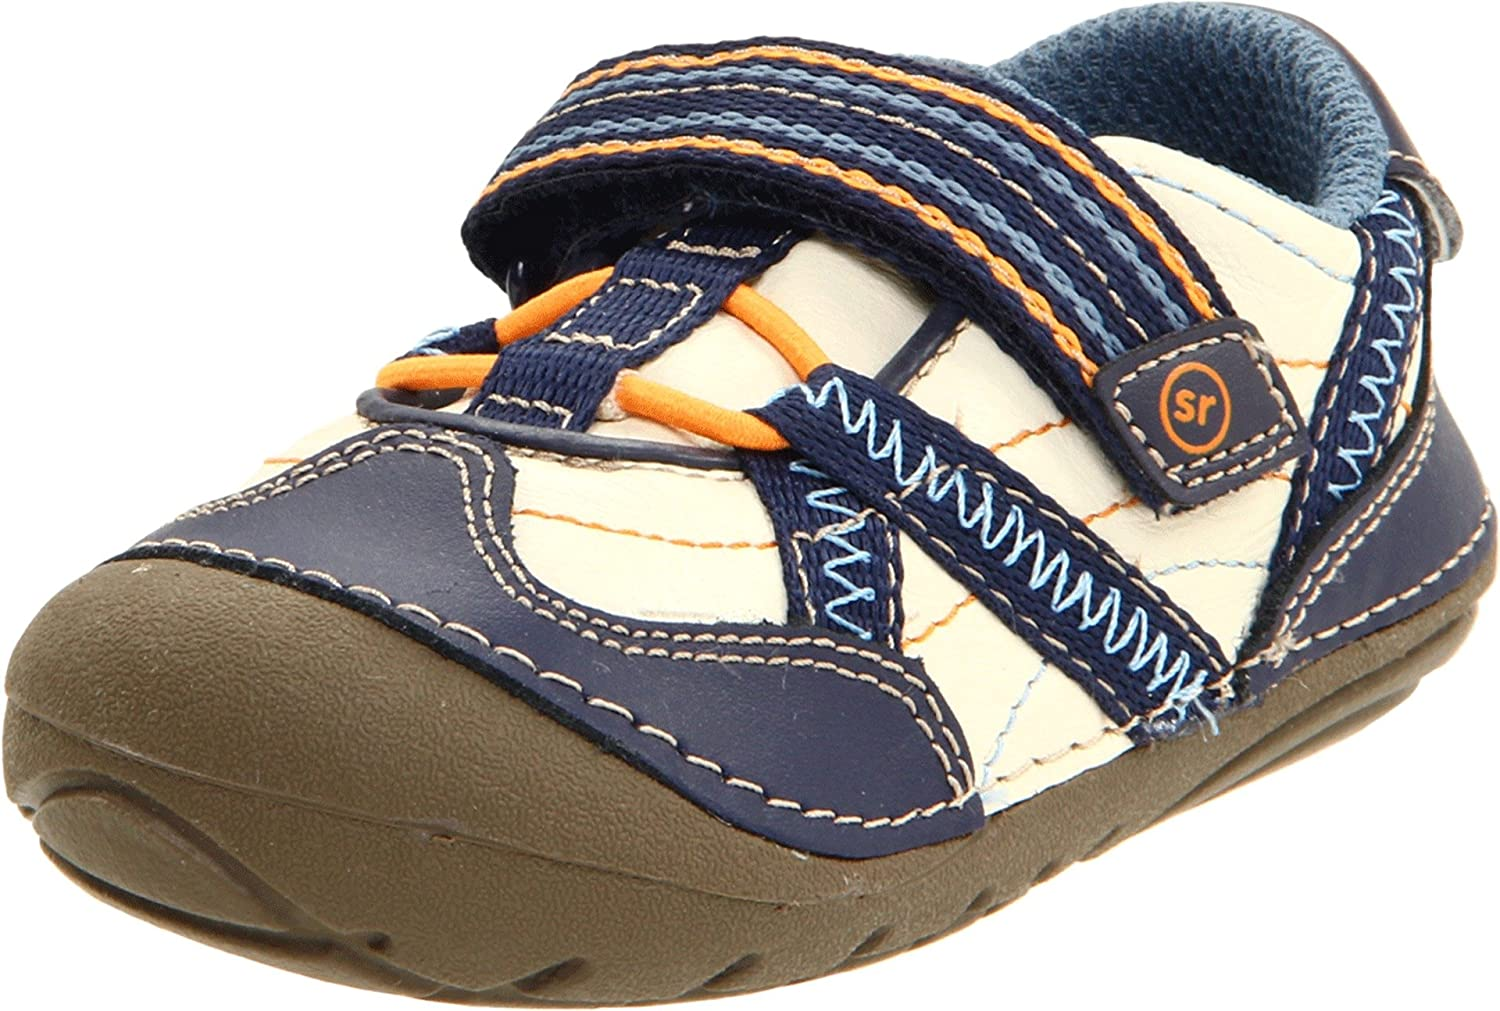 Stride Rite Soft Motion Baby and Free Shipping New Snea Boys Toddler 4 years warranty Athletic Nash